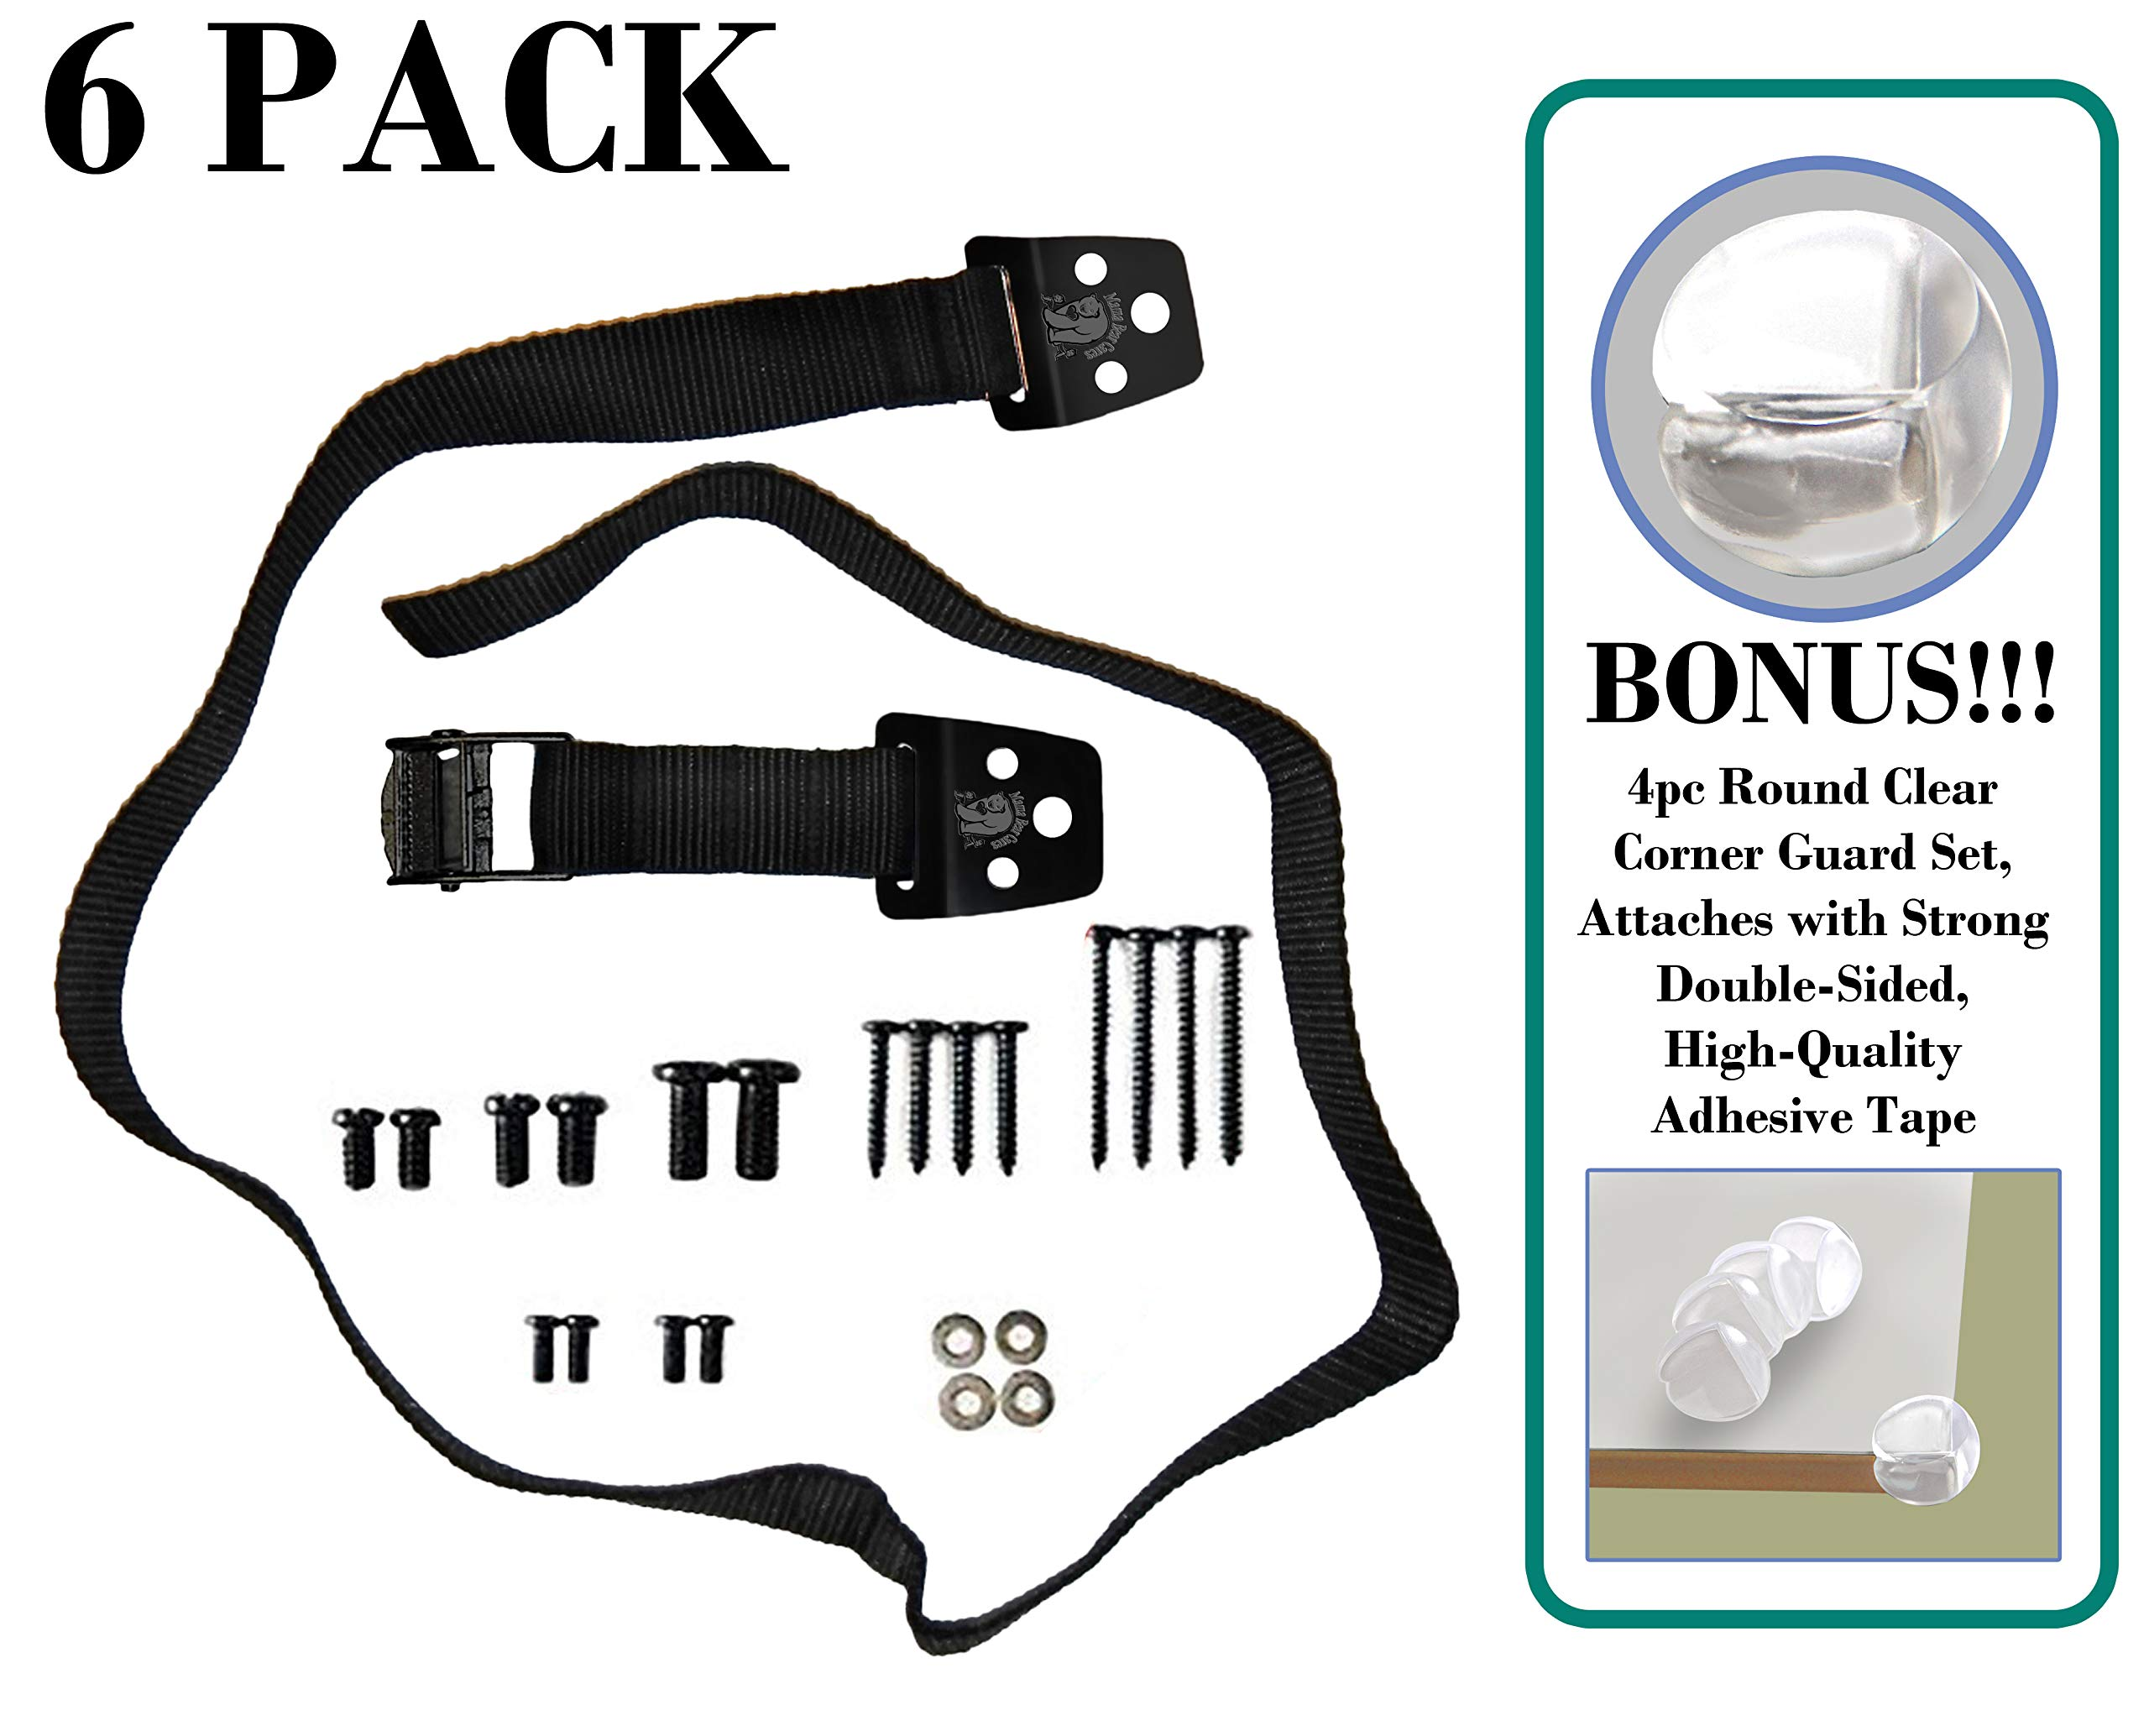 MAMA BEAR CARES - 40'' Steel Furniture Anchors for Baby Proofing, Anti-Tip TV & Furniture Safety Straps with Iron CAM Security Buckles